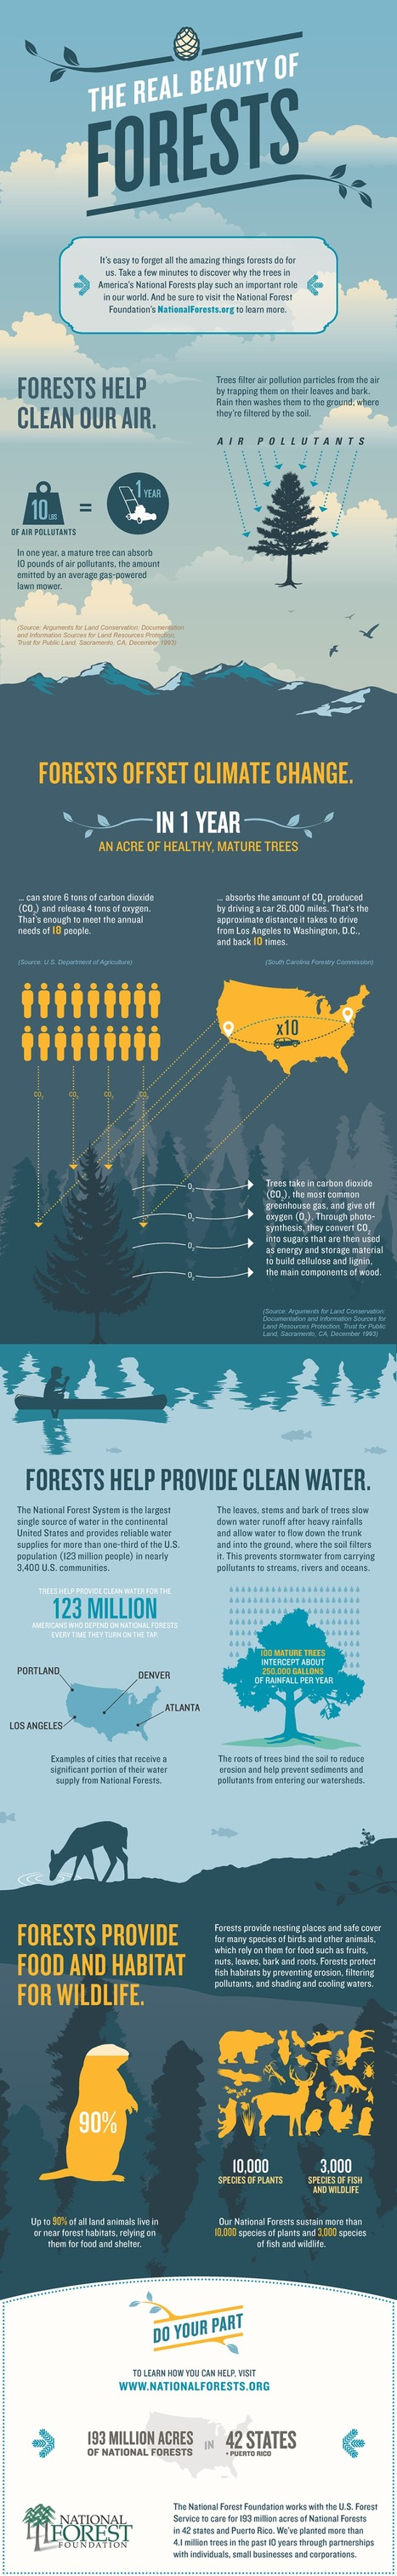 The Real Beauty of Forests - An Infographic from the National Forest Foundation | SAVE THE ARTIC | Scoop.it